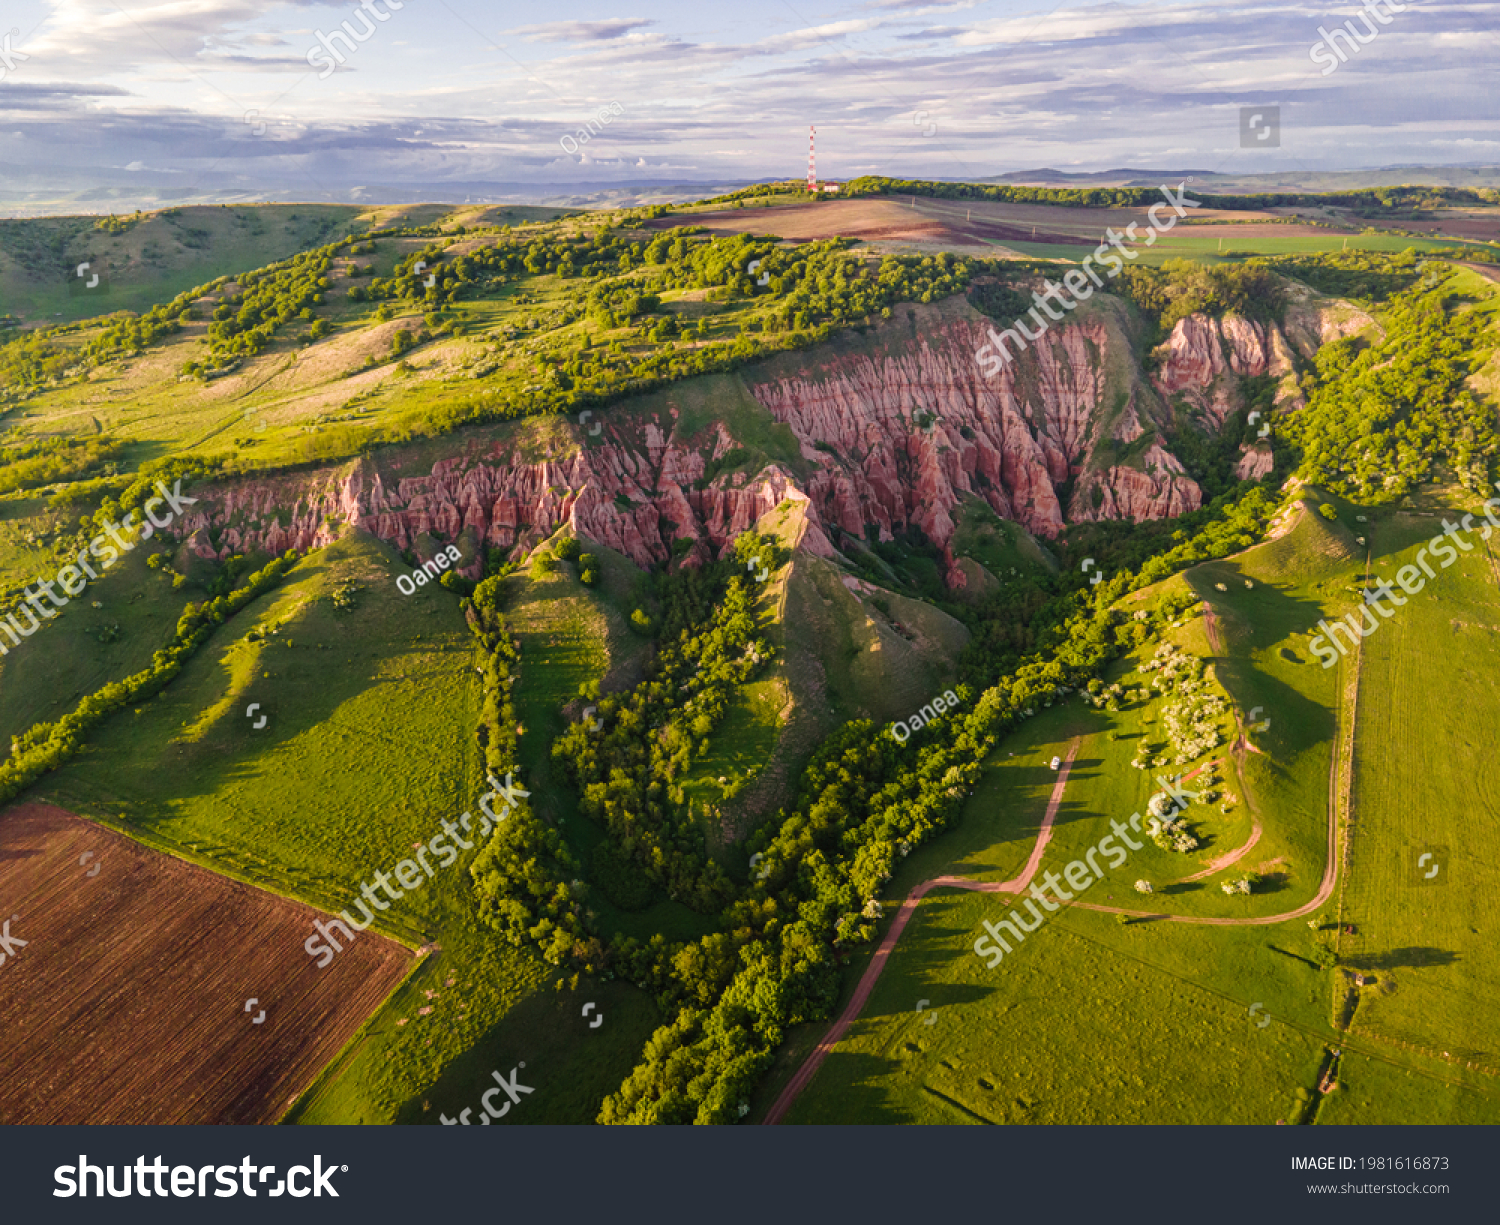 Aerial photography of the Red Ravine located in Romania, Alba county. Photo taken from a drone at sunset in spring season. Drone shot of a canyon formation from a high angle